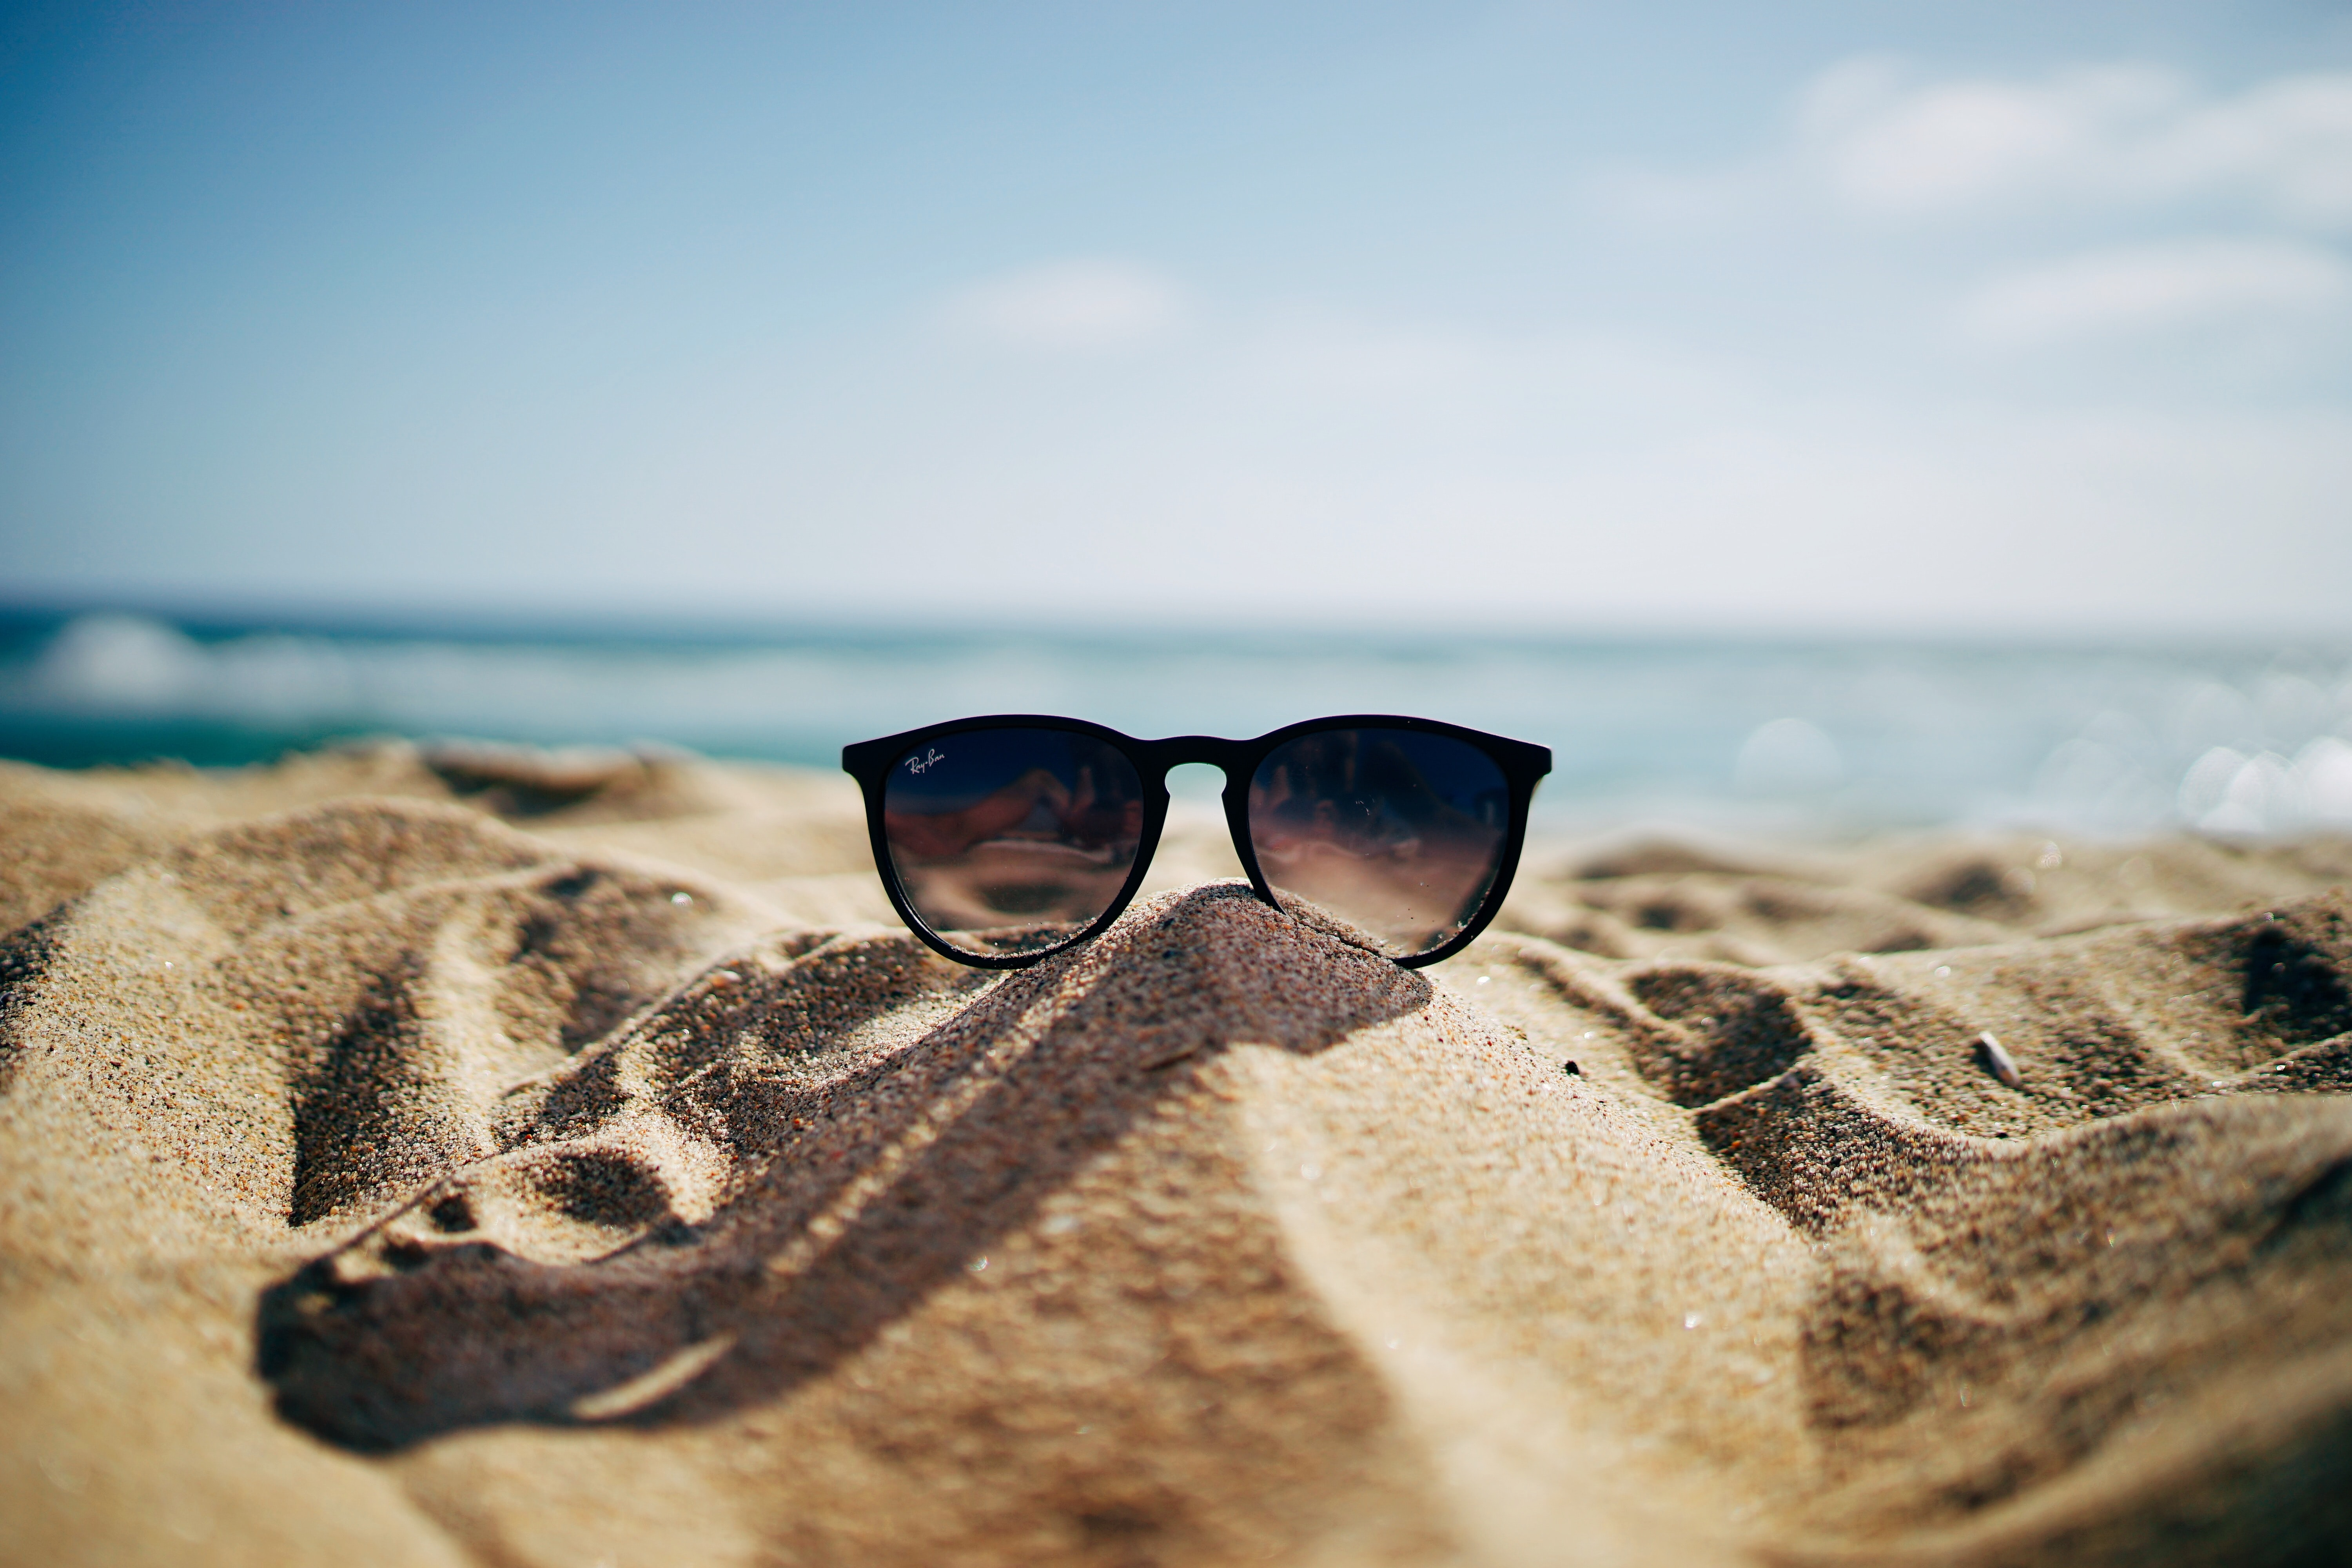 Top 10 Ways You Know You Got Too Much Sun at the Beach